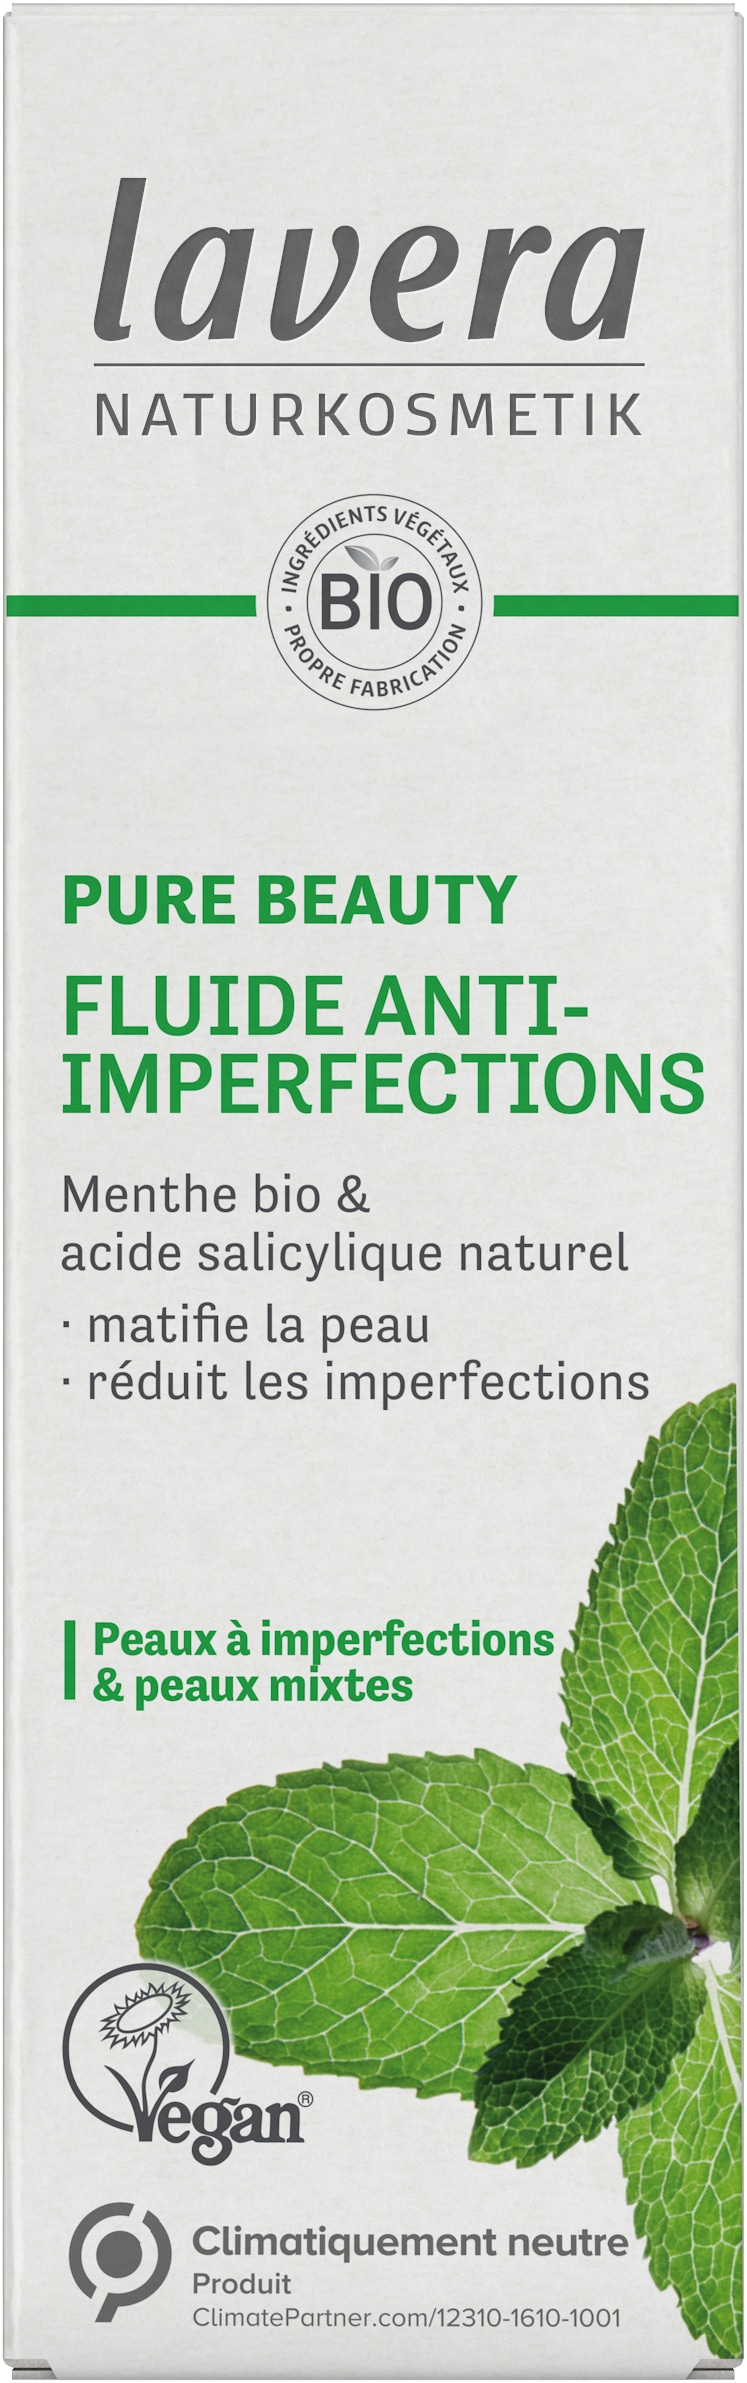 PURE BEAUTY Fluide Anti-Imperfections